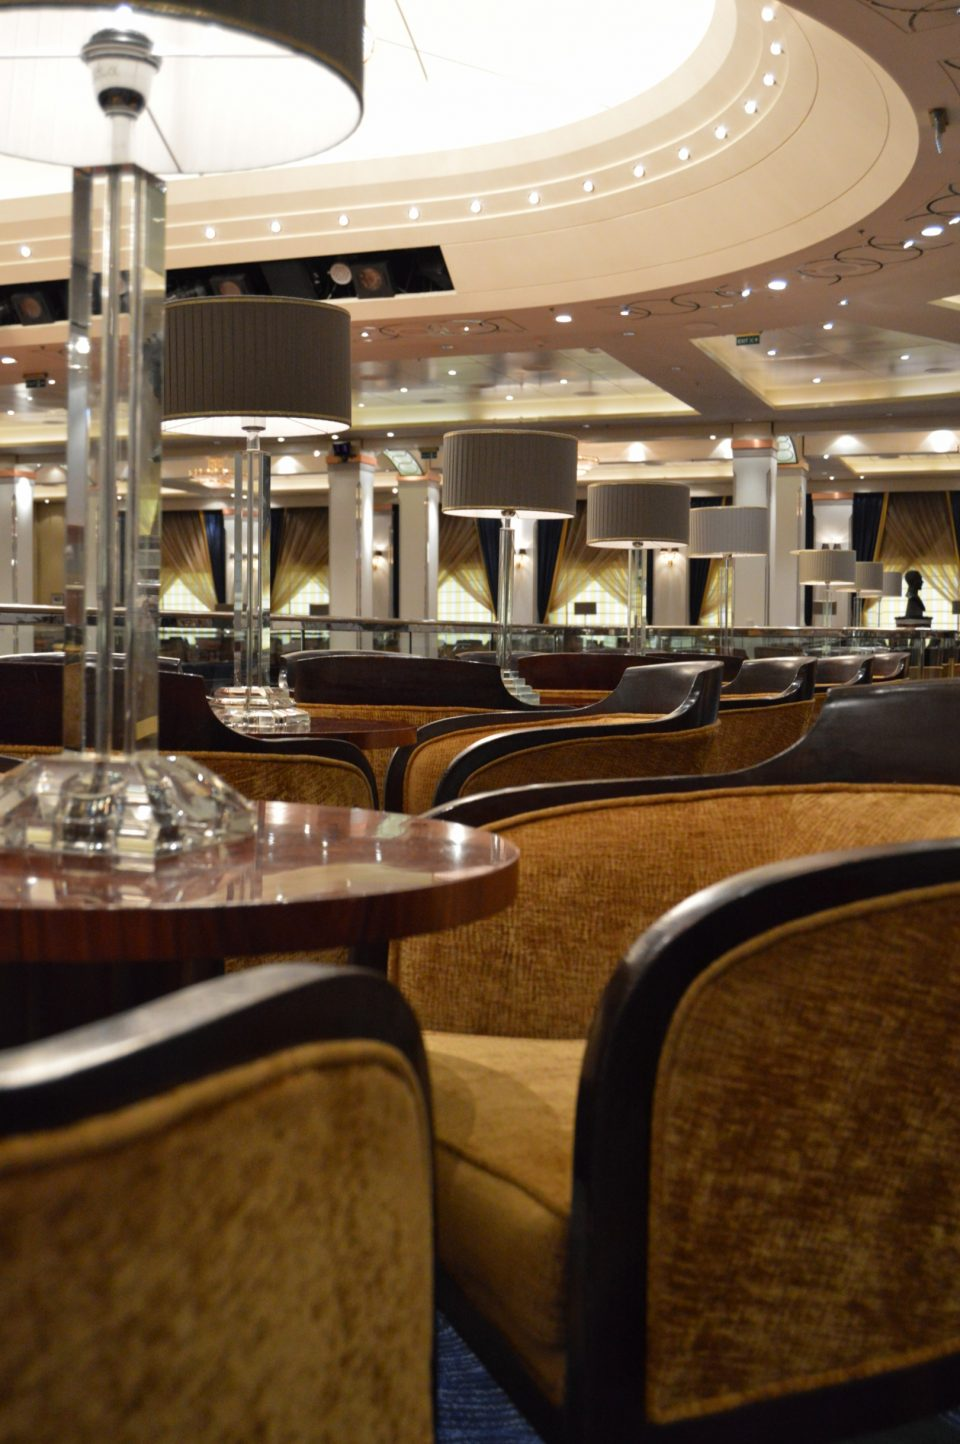 DSC 0073 01 960x1444 - Cruising the Queen Mary 2